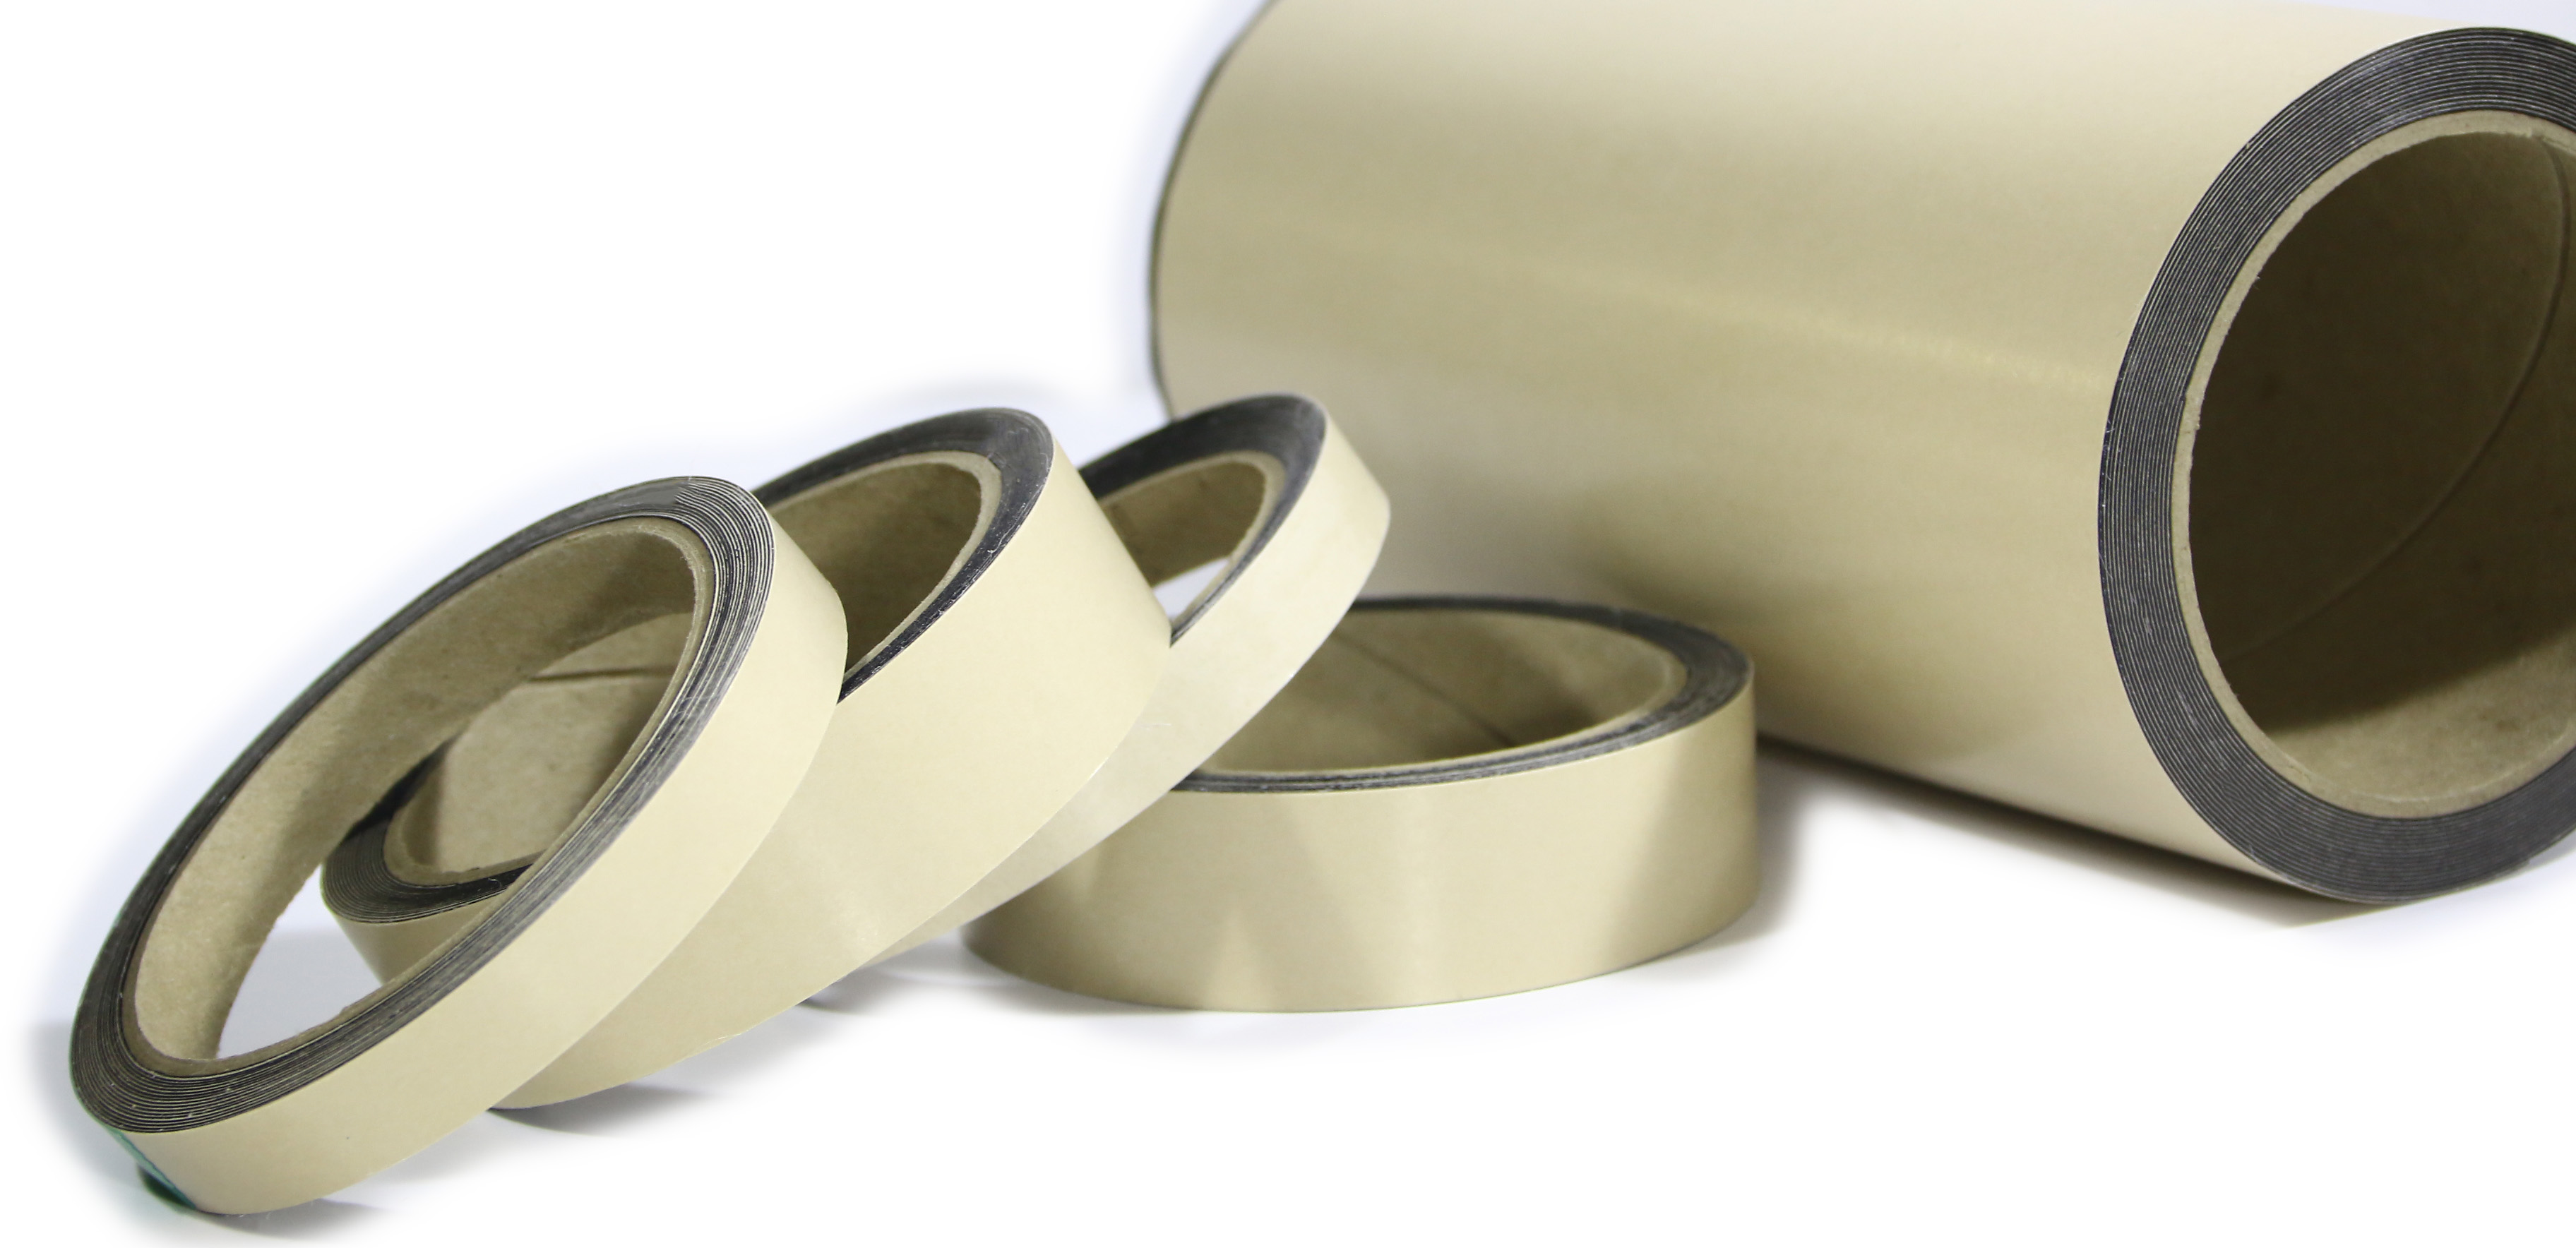 CS Hyde 19-5R UHMW .005 Mil Tape with Rubber Adhesive 5.625 x 36 Yards 5.625 x 36 Yards CS Hyde Company Inc 19-5R-5.625-36